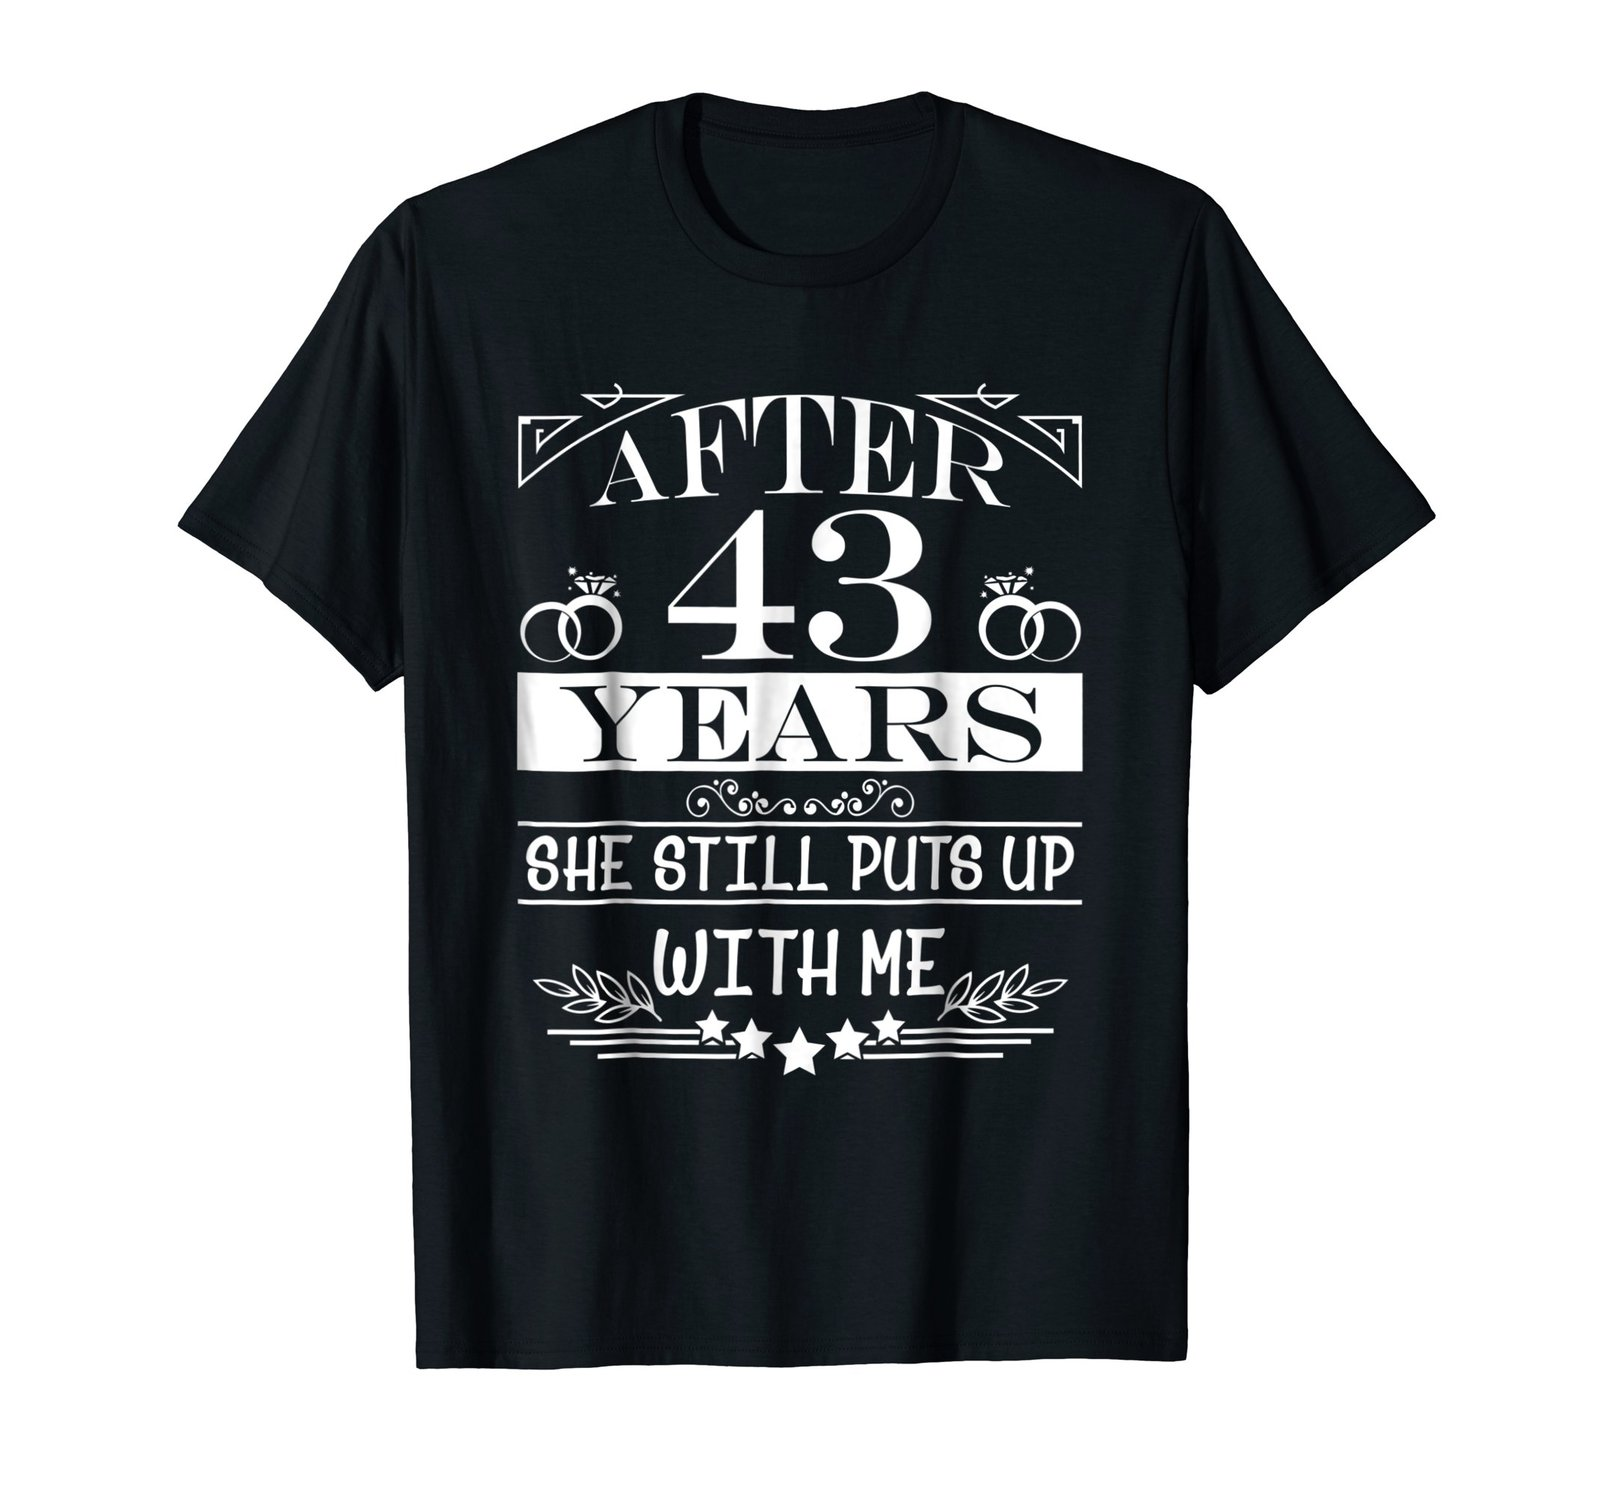 43rd Wedding Anniversary Gifts: 43rd Wedding Anniversary Gifts For HimHusband Couple Shirt